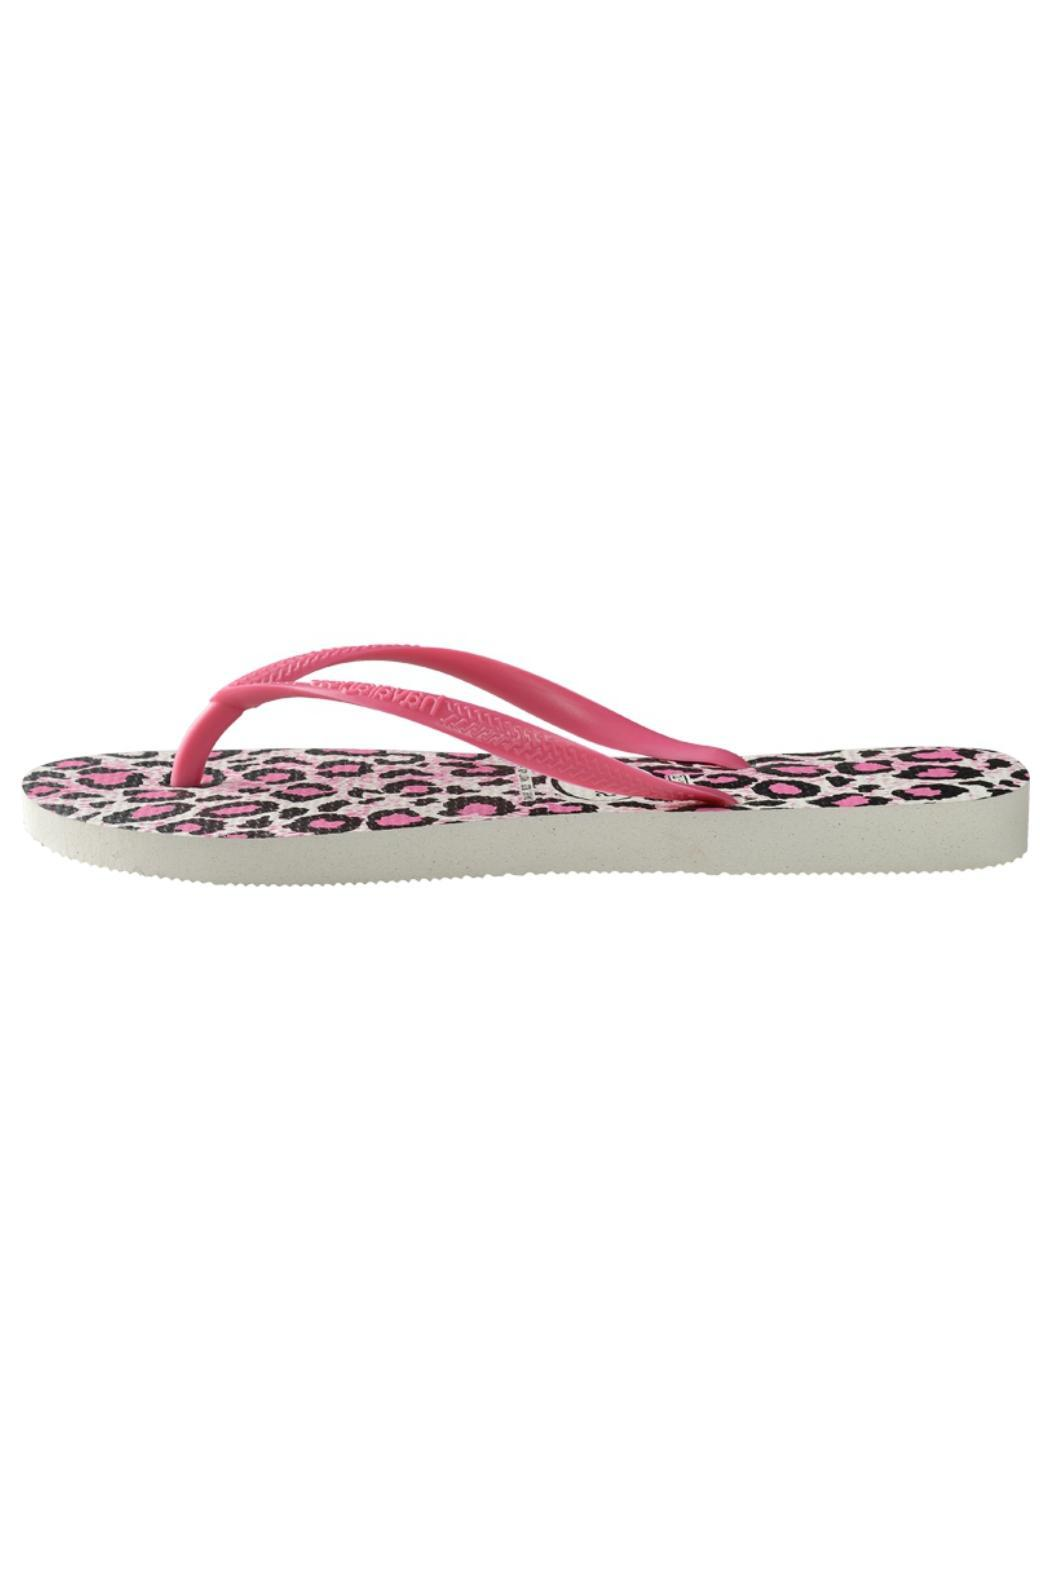 23f4eaaa99688b Havaianas Slim Animal Flip-Flop from Florida by Jaffi s — Shoptiques